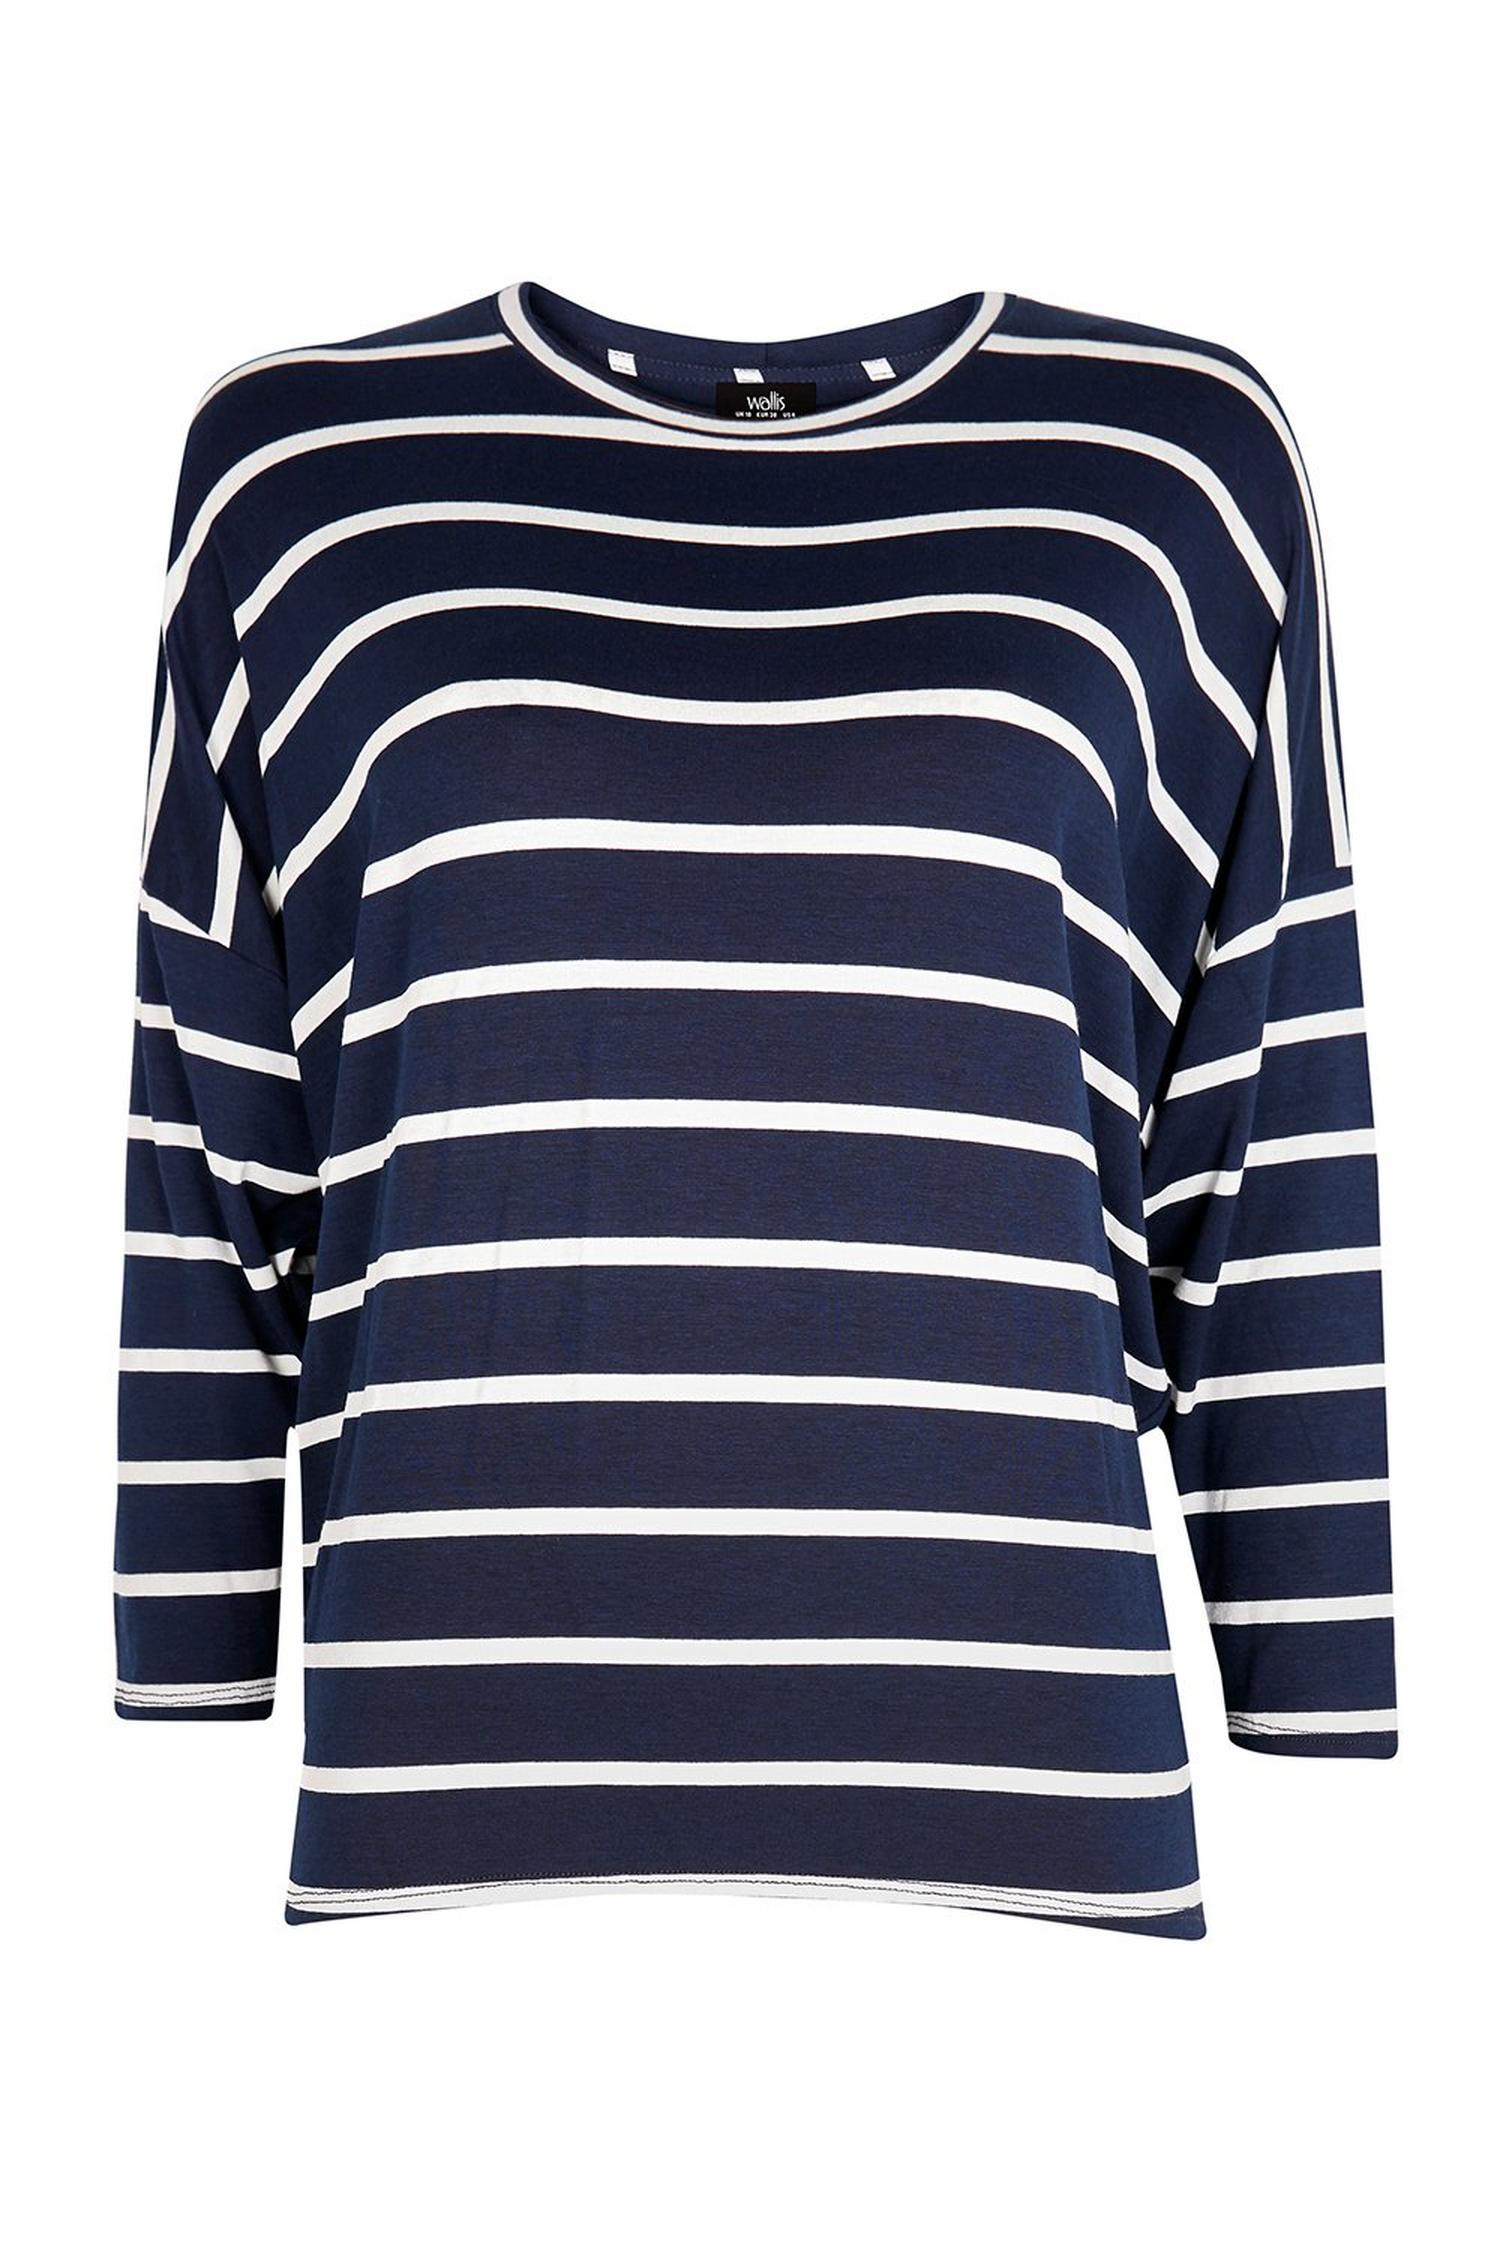 148 TALL Navy Striped Batwing Top image number 2